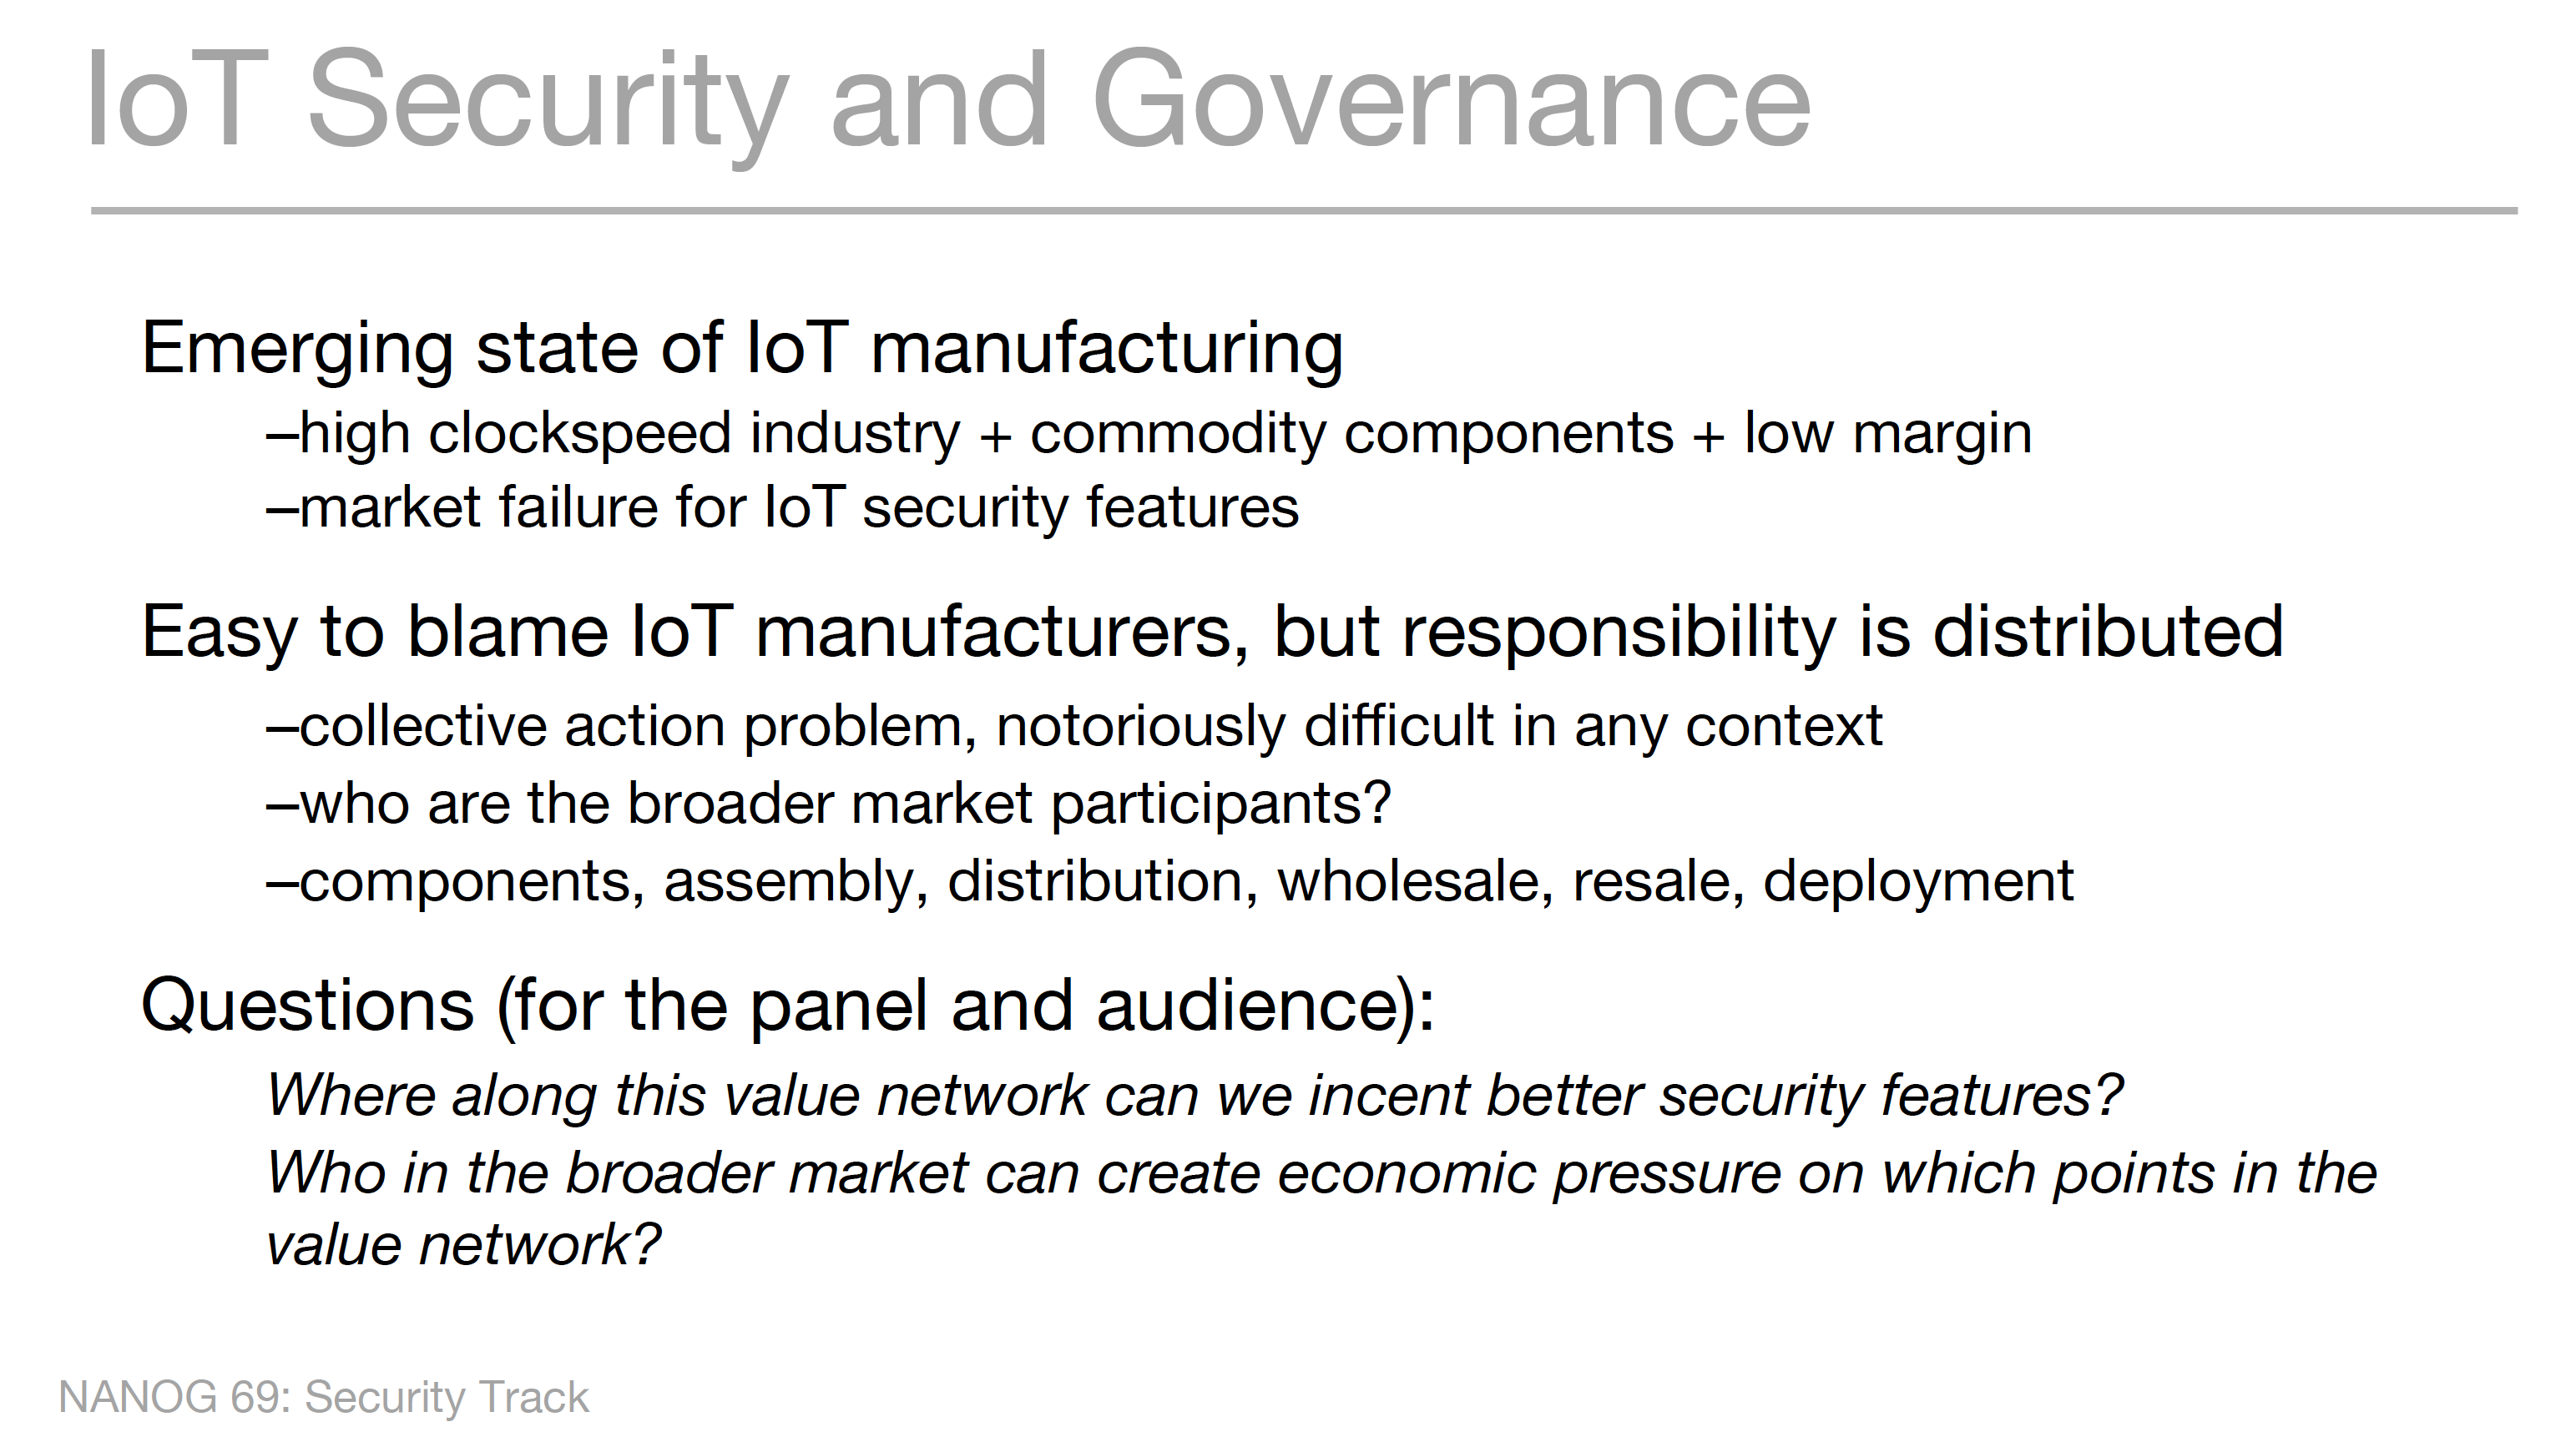 Jesse Sowell's slide in the IOT Security Panel Session